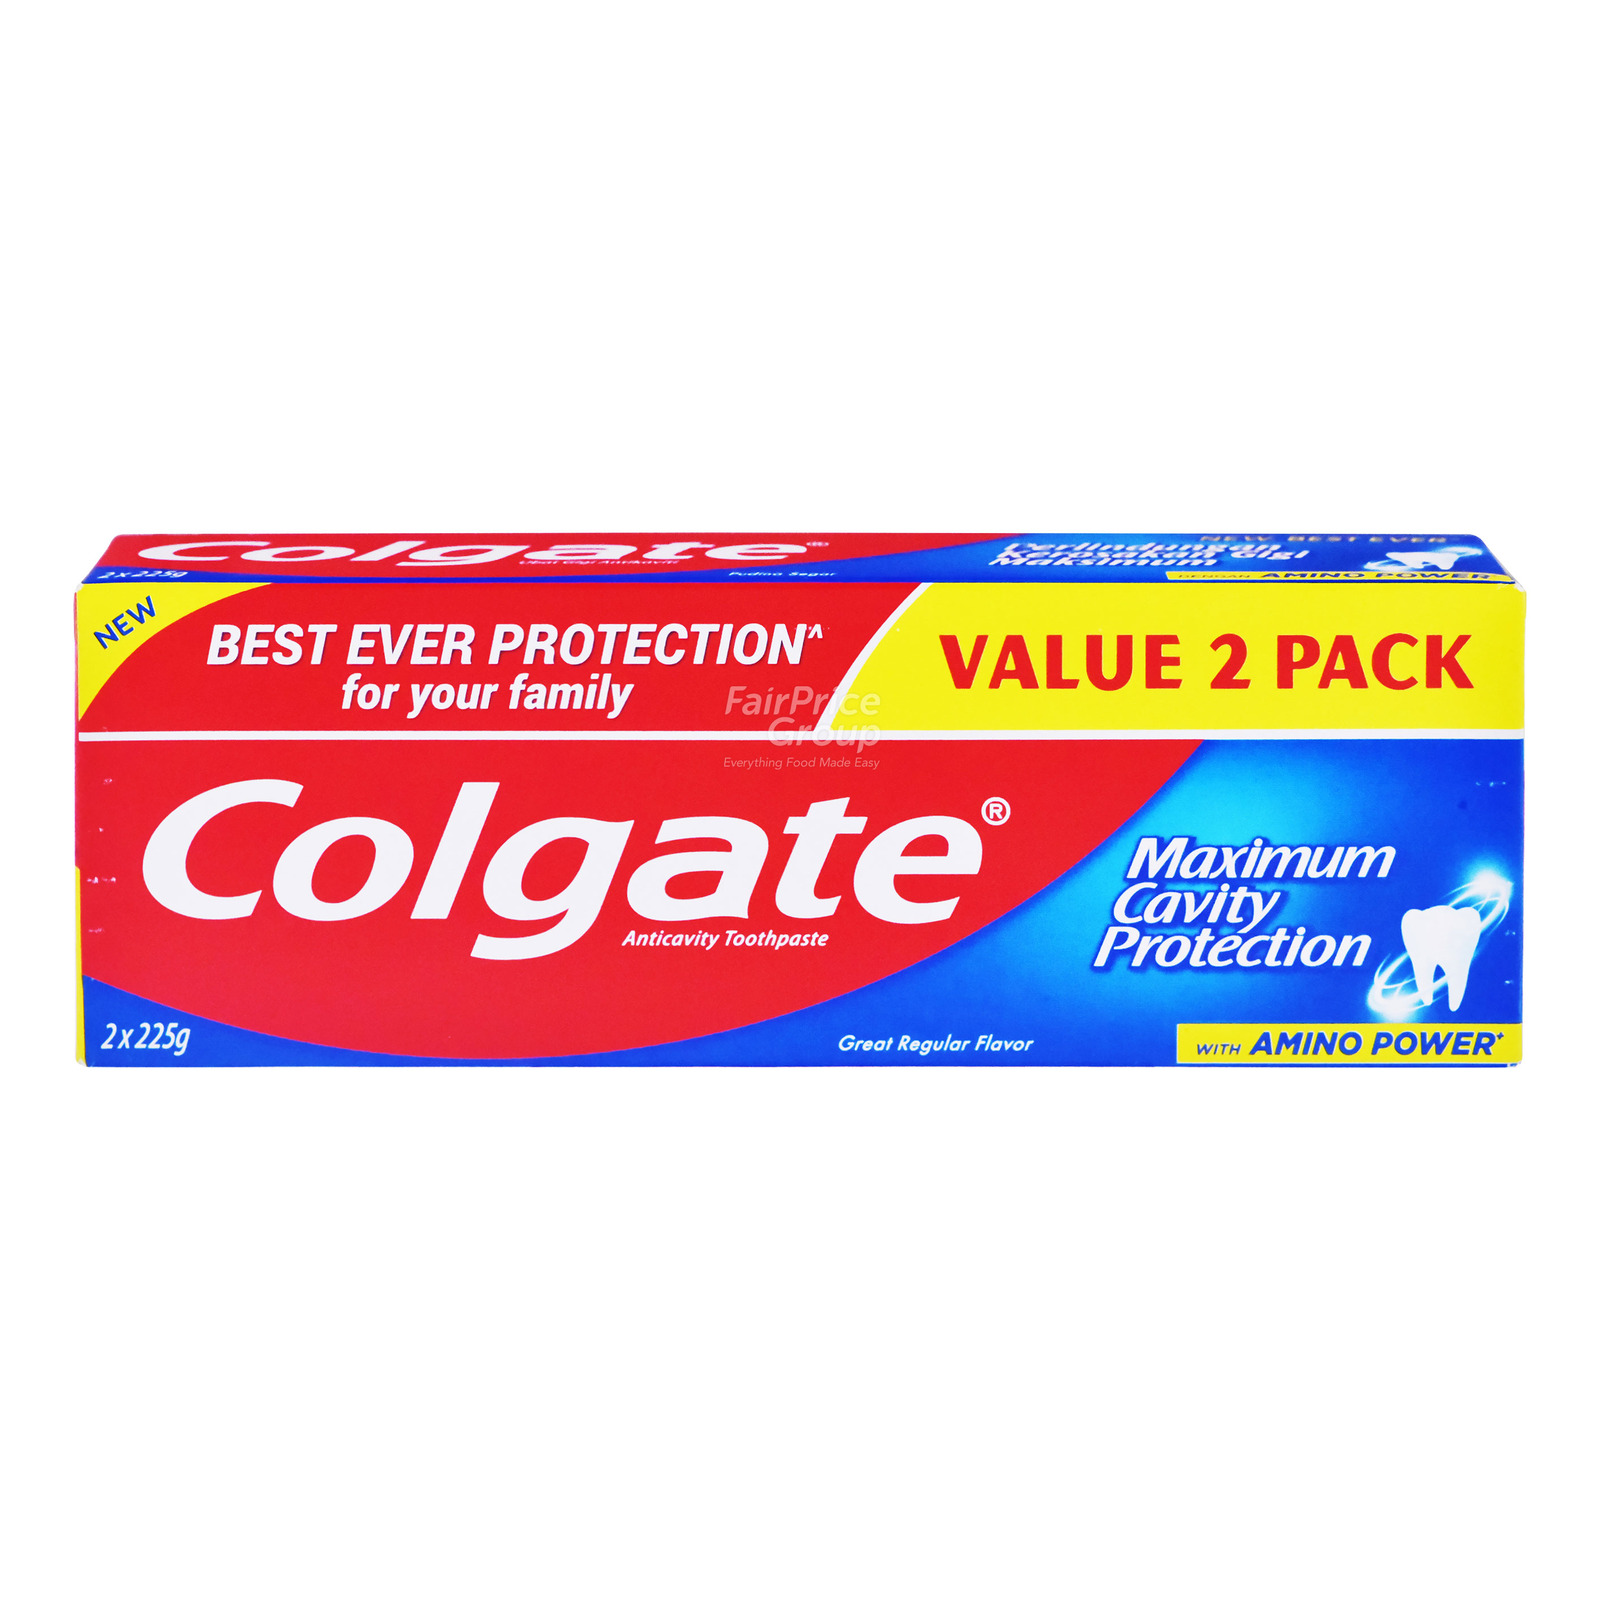 Colgate Maximum Cavity Protection Great Regular Flavour ToothpasteValuepack175g x 3